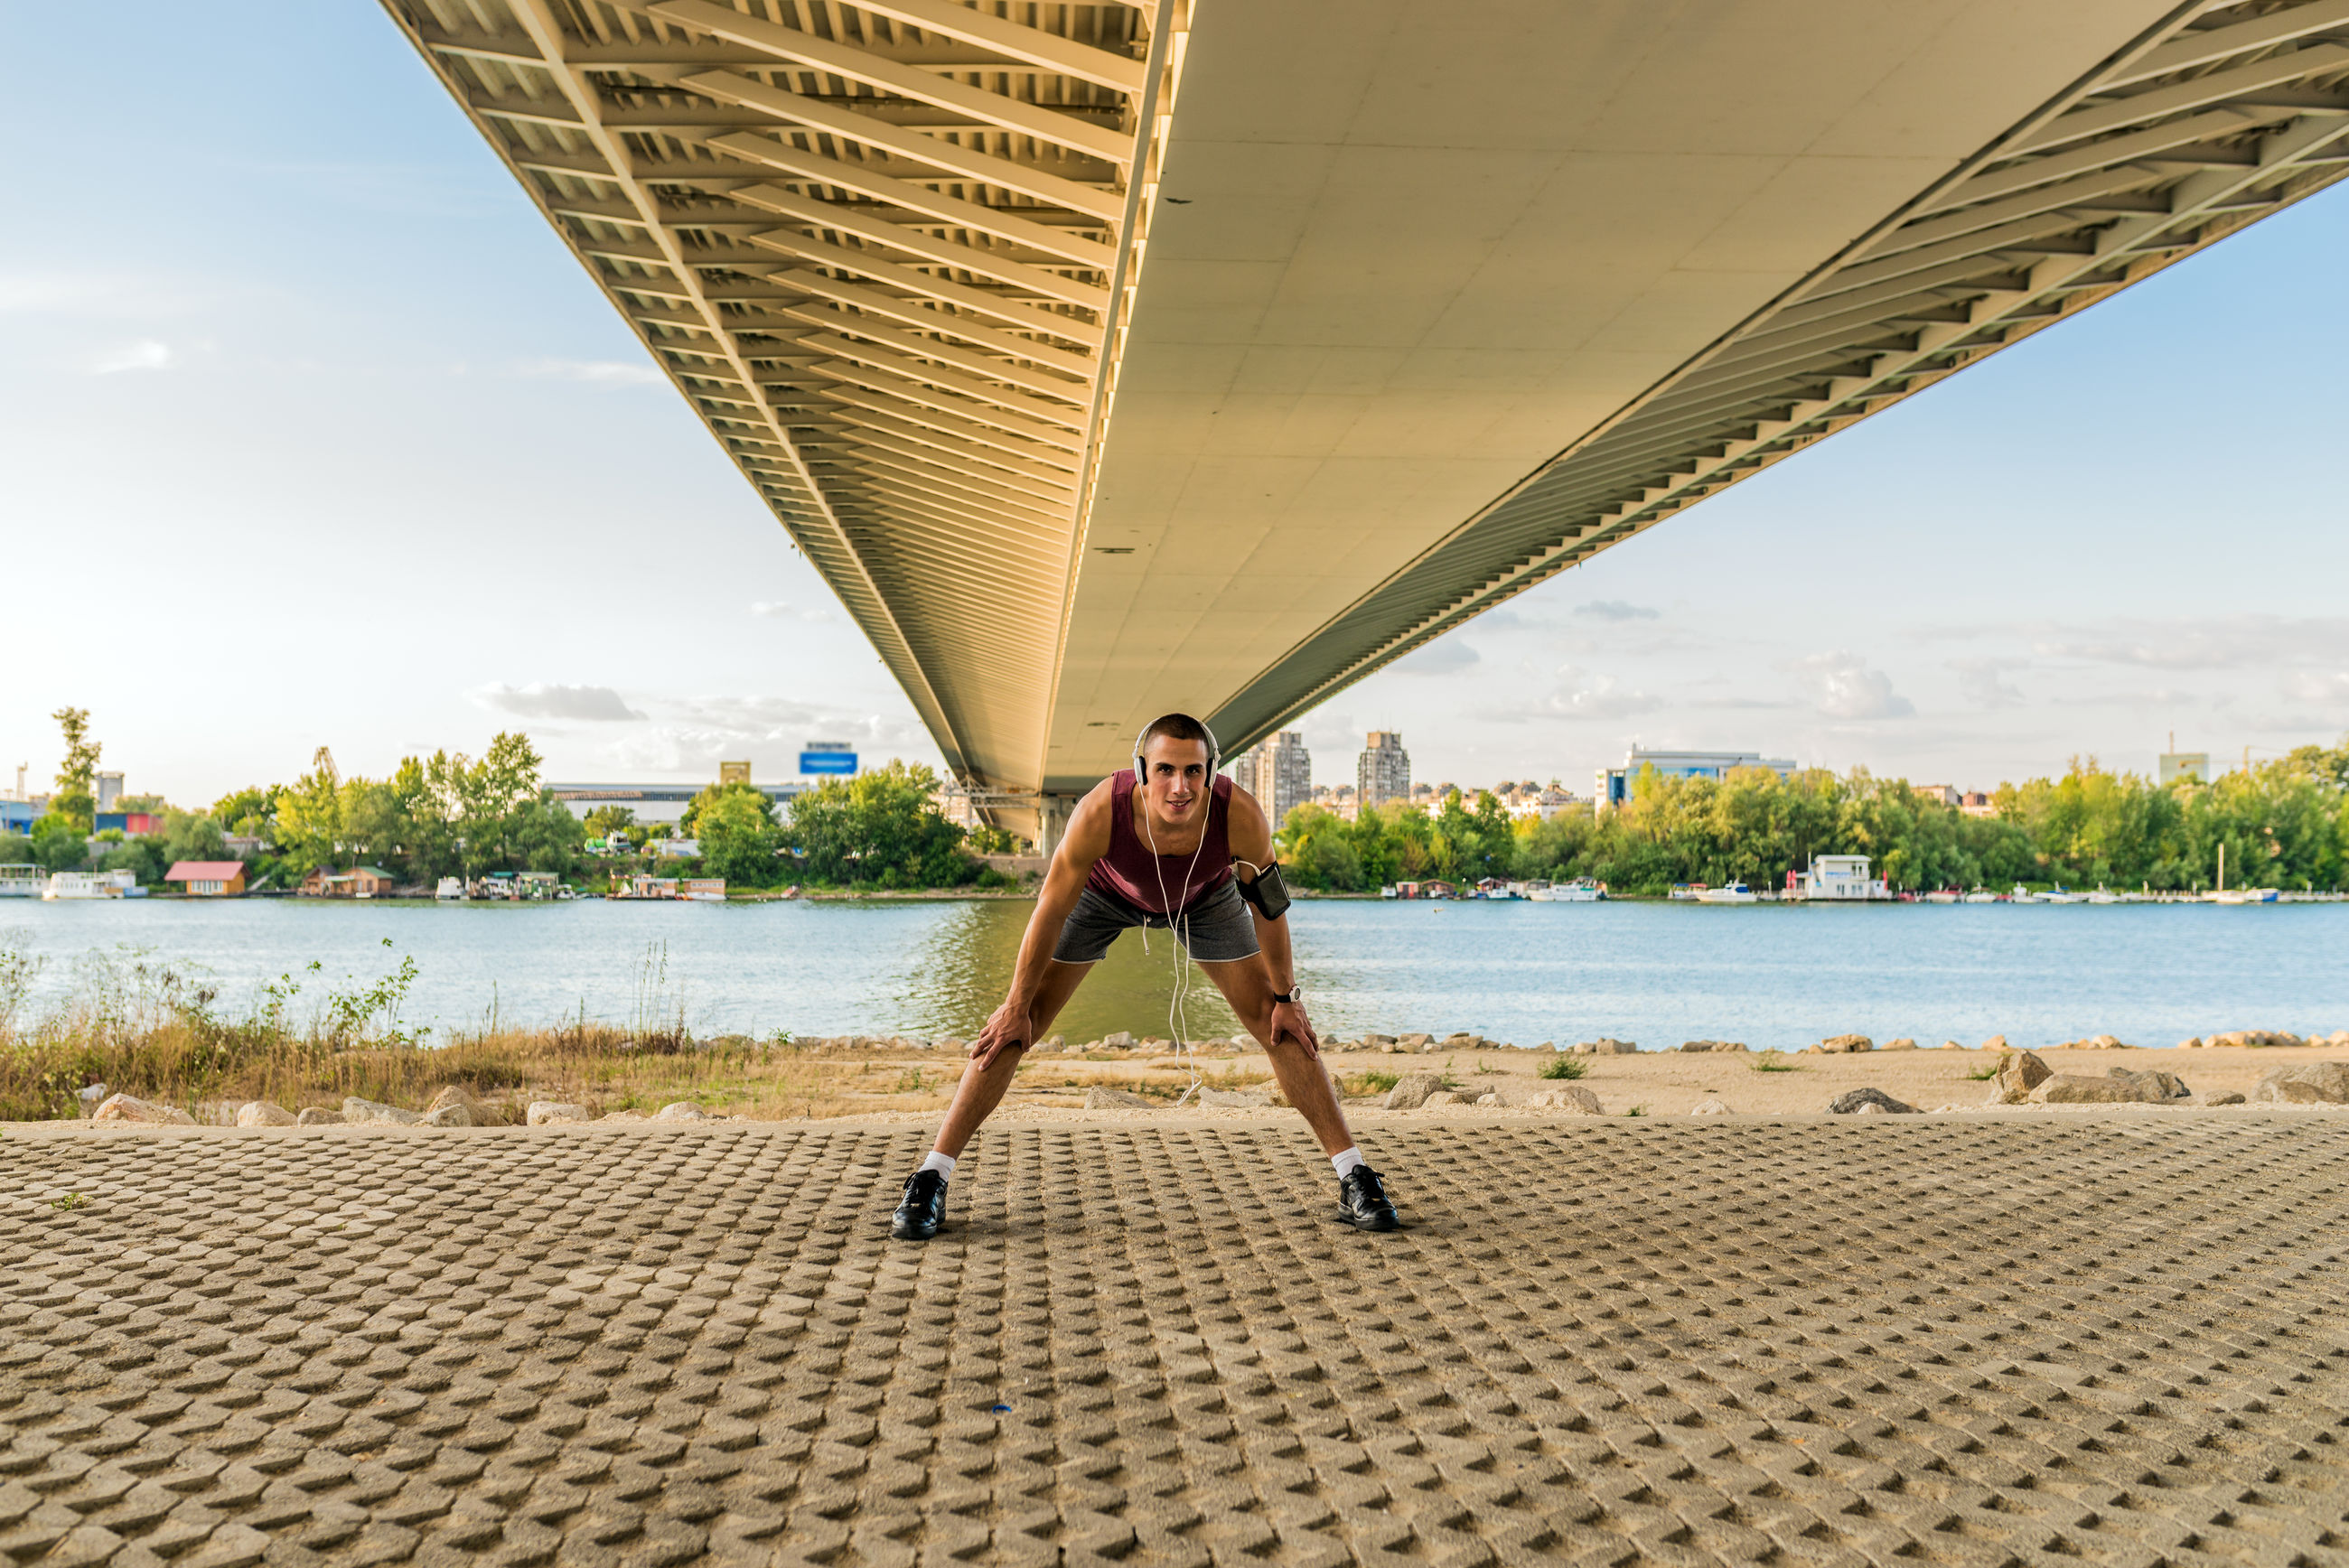 Portrait of handsome man exercising under bridge with river in background